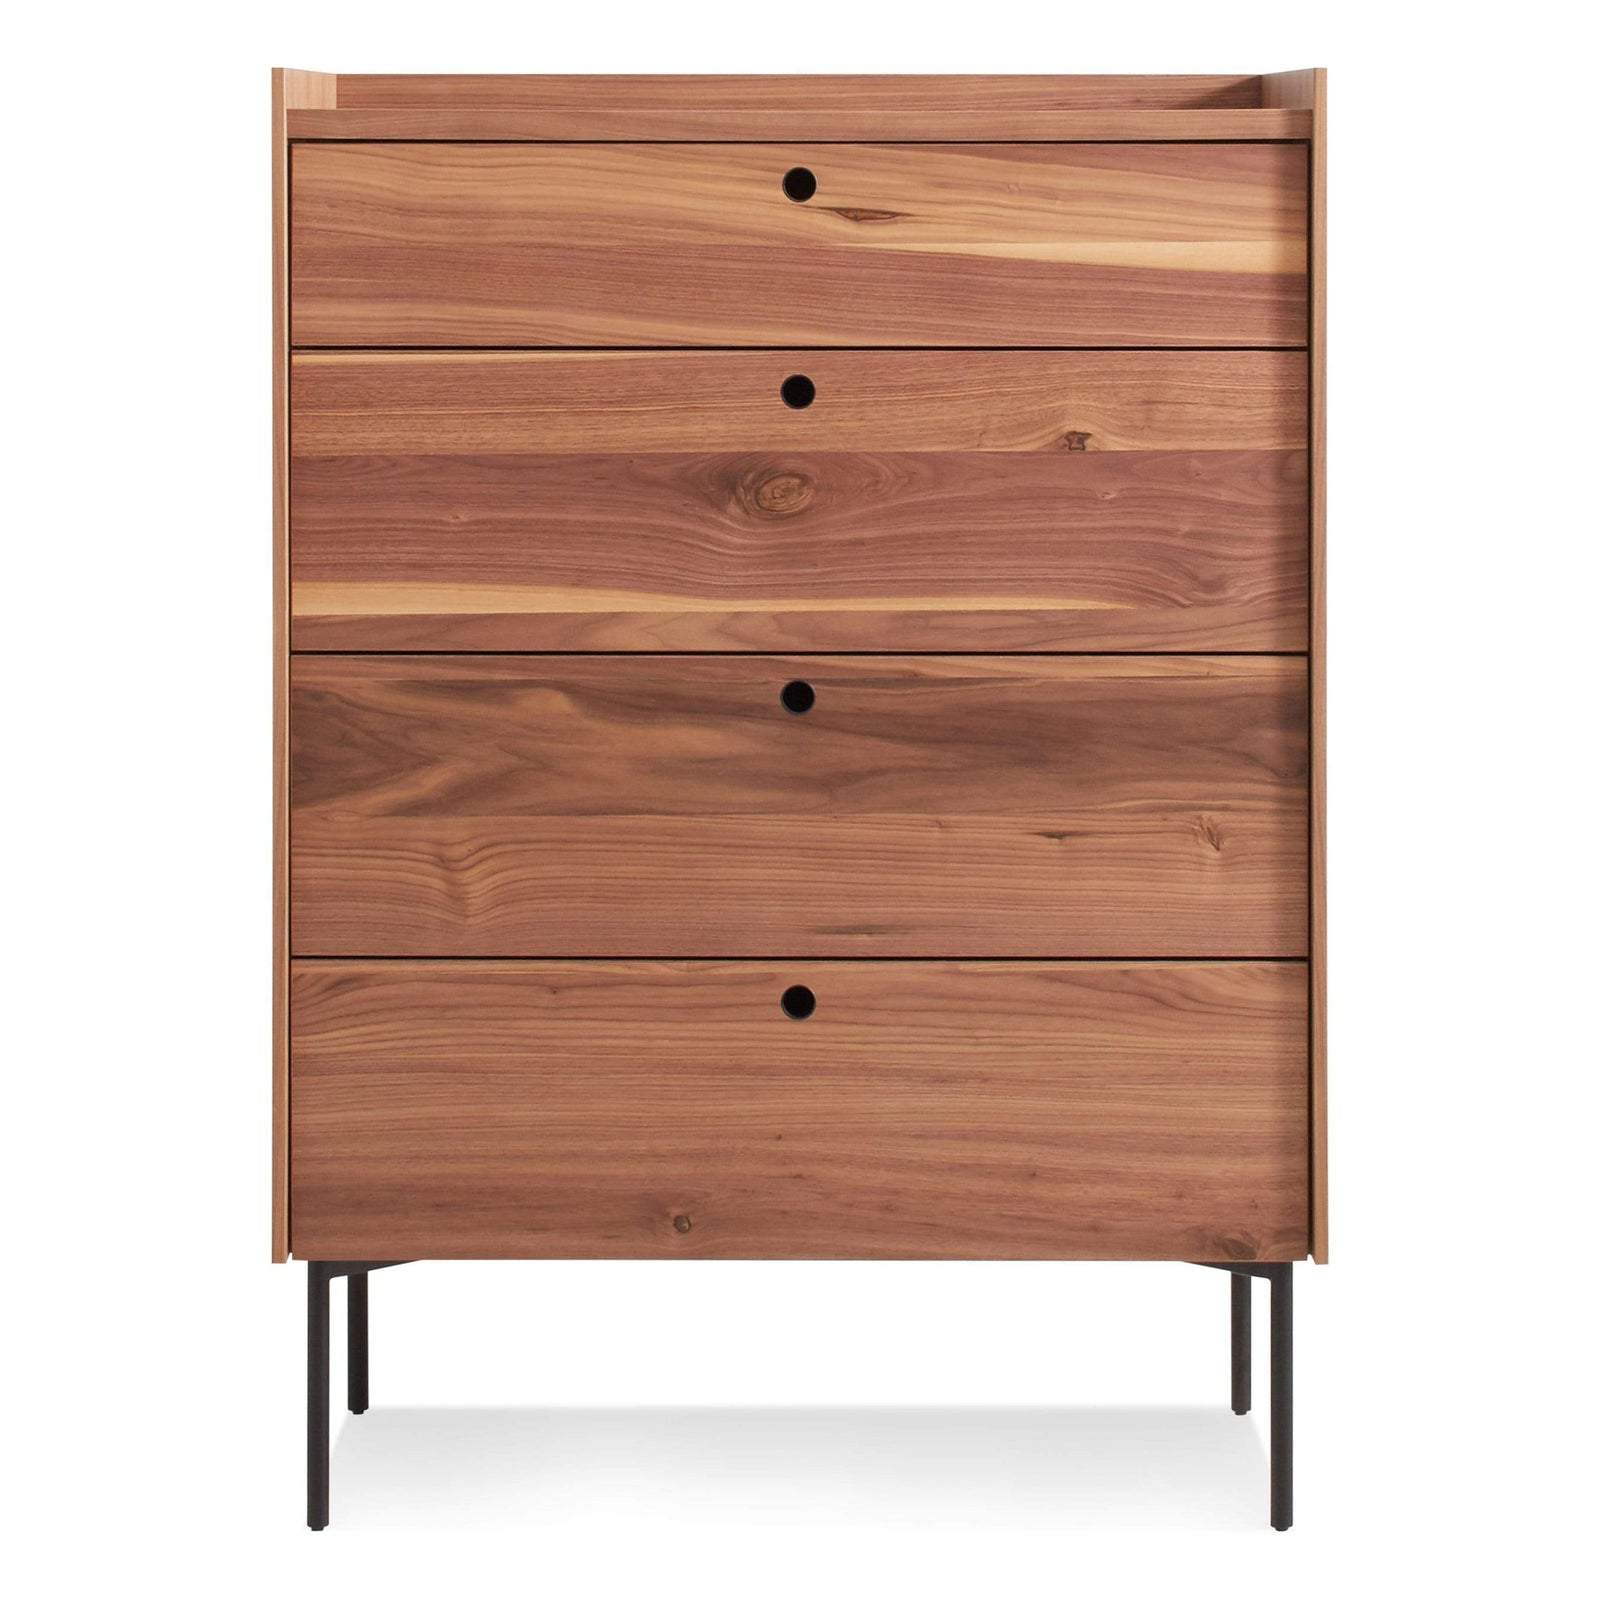 Blu Dot Furniture 4 Drawer / Rustic Walnut Peek Dresser